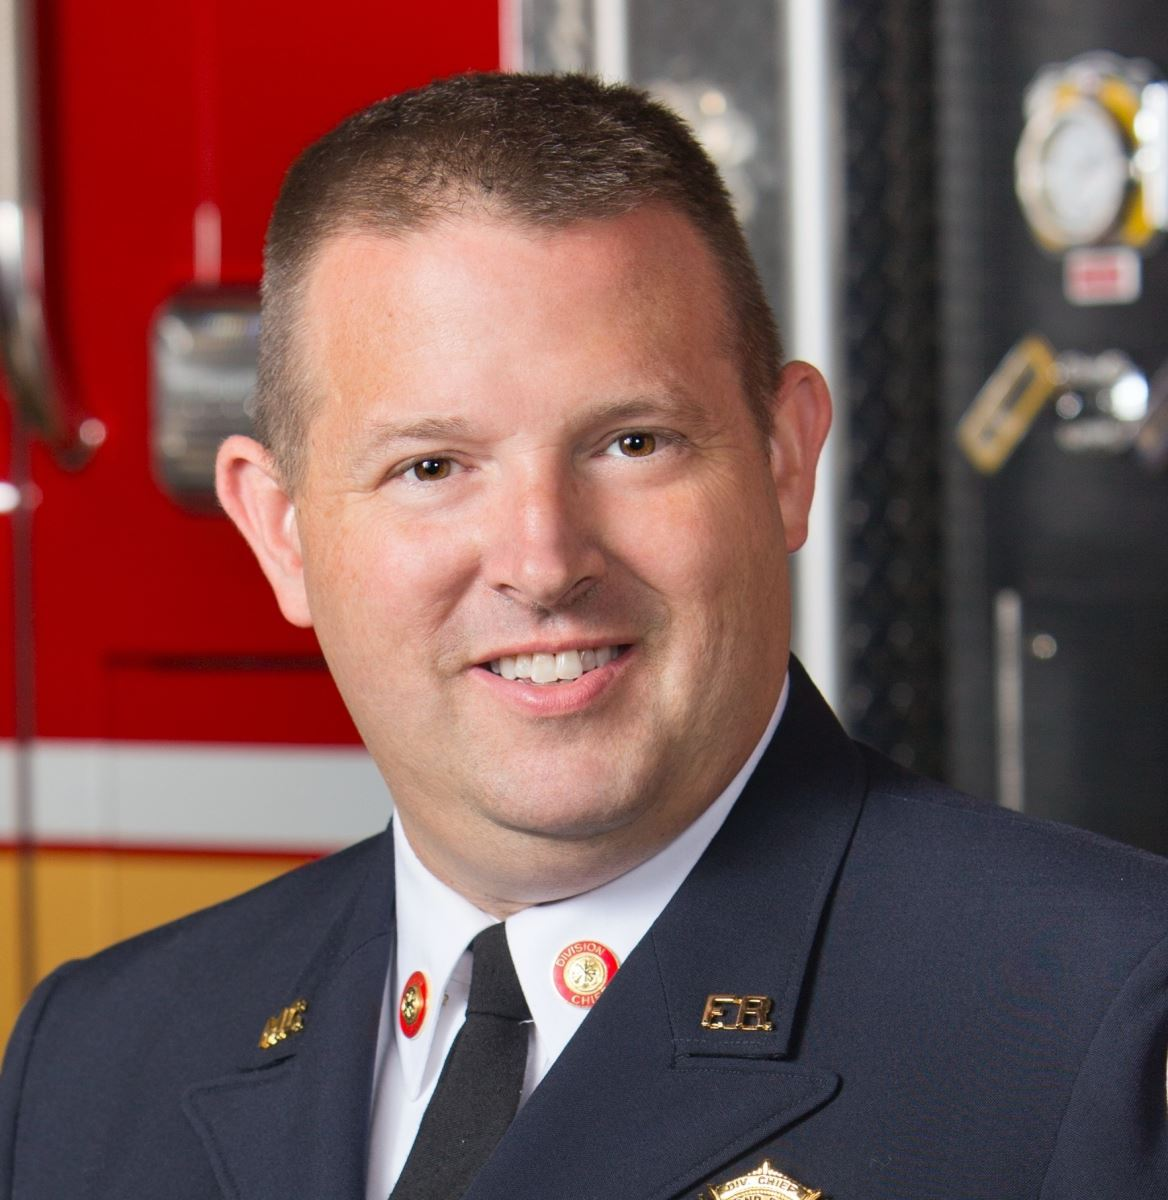 Acting Fire Chief Scott Goldstein